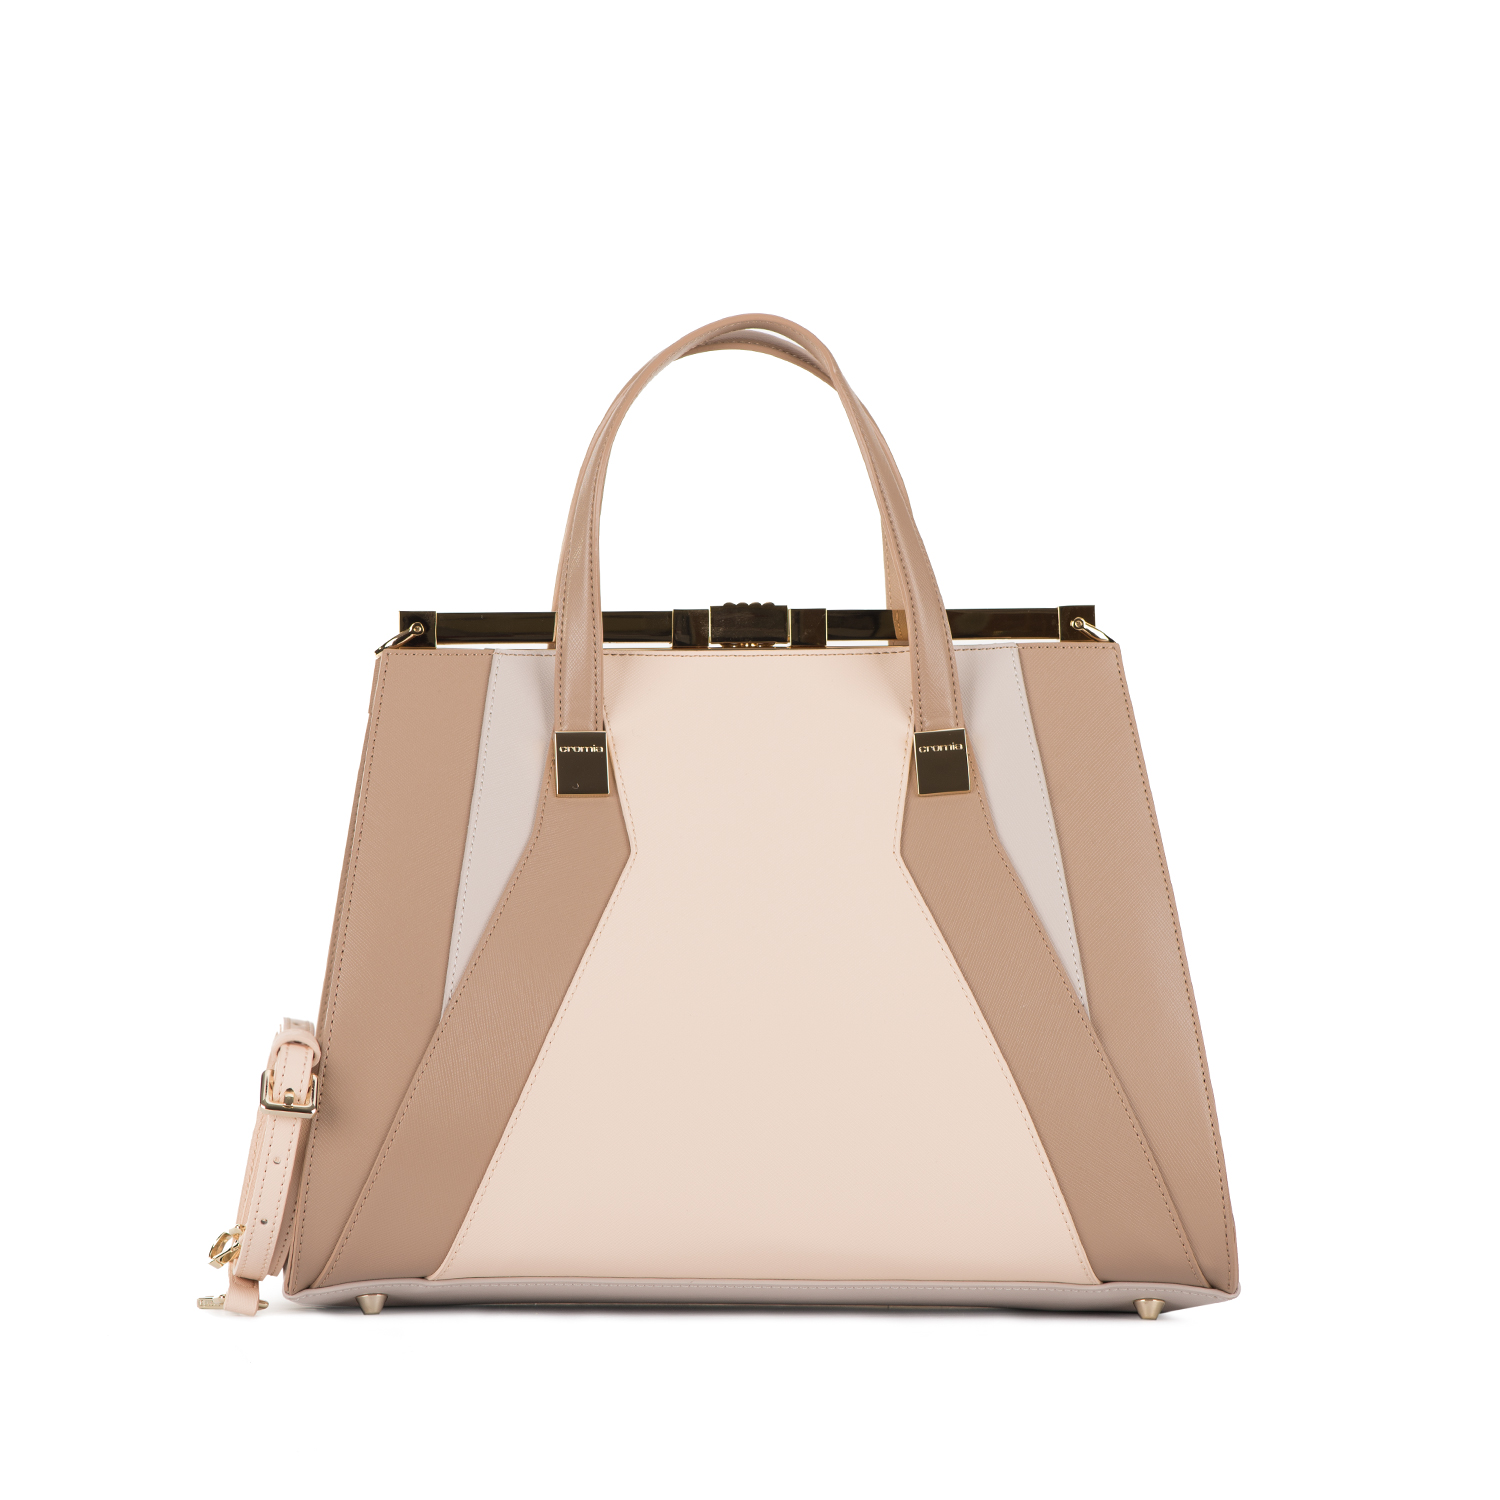 Crosia Handbags : Cromia Three-tone handbag for 385.00 lv. - PEPINA